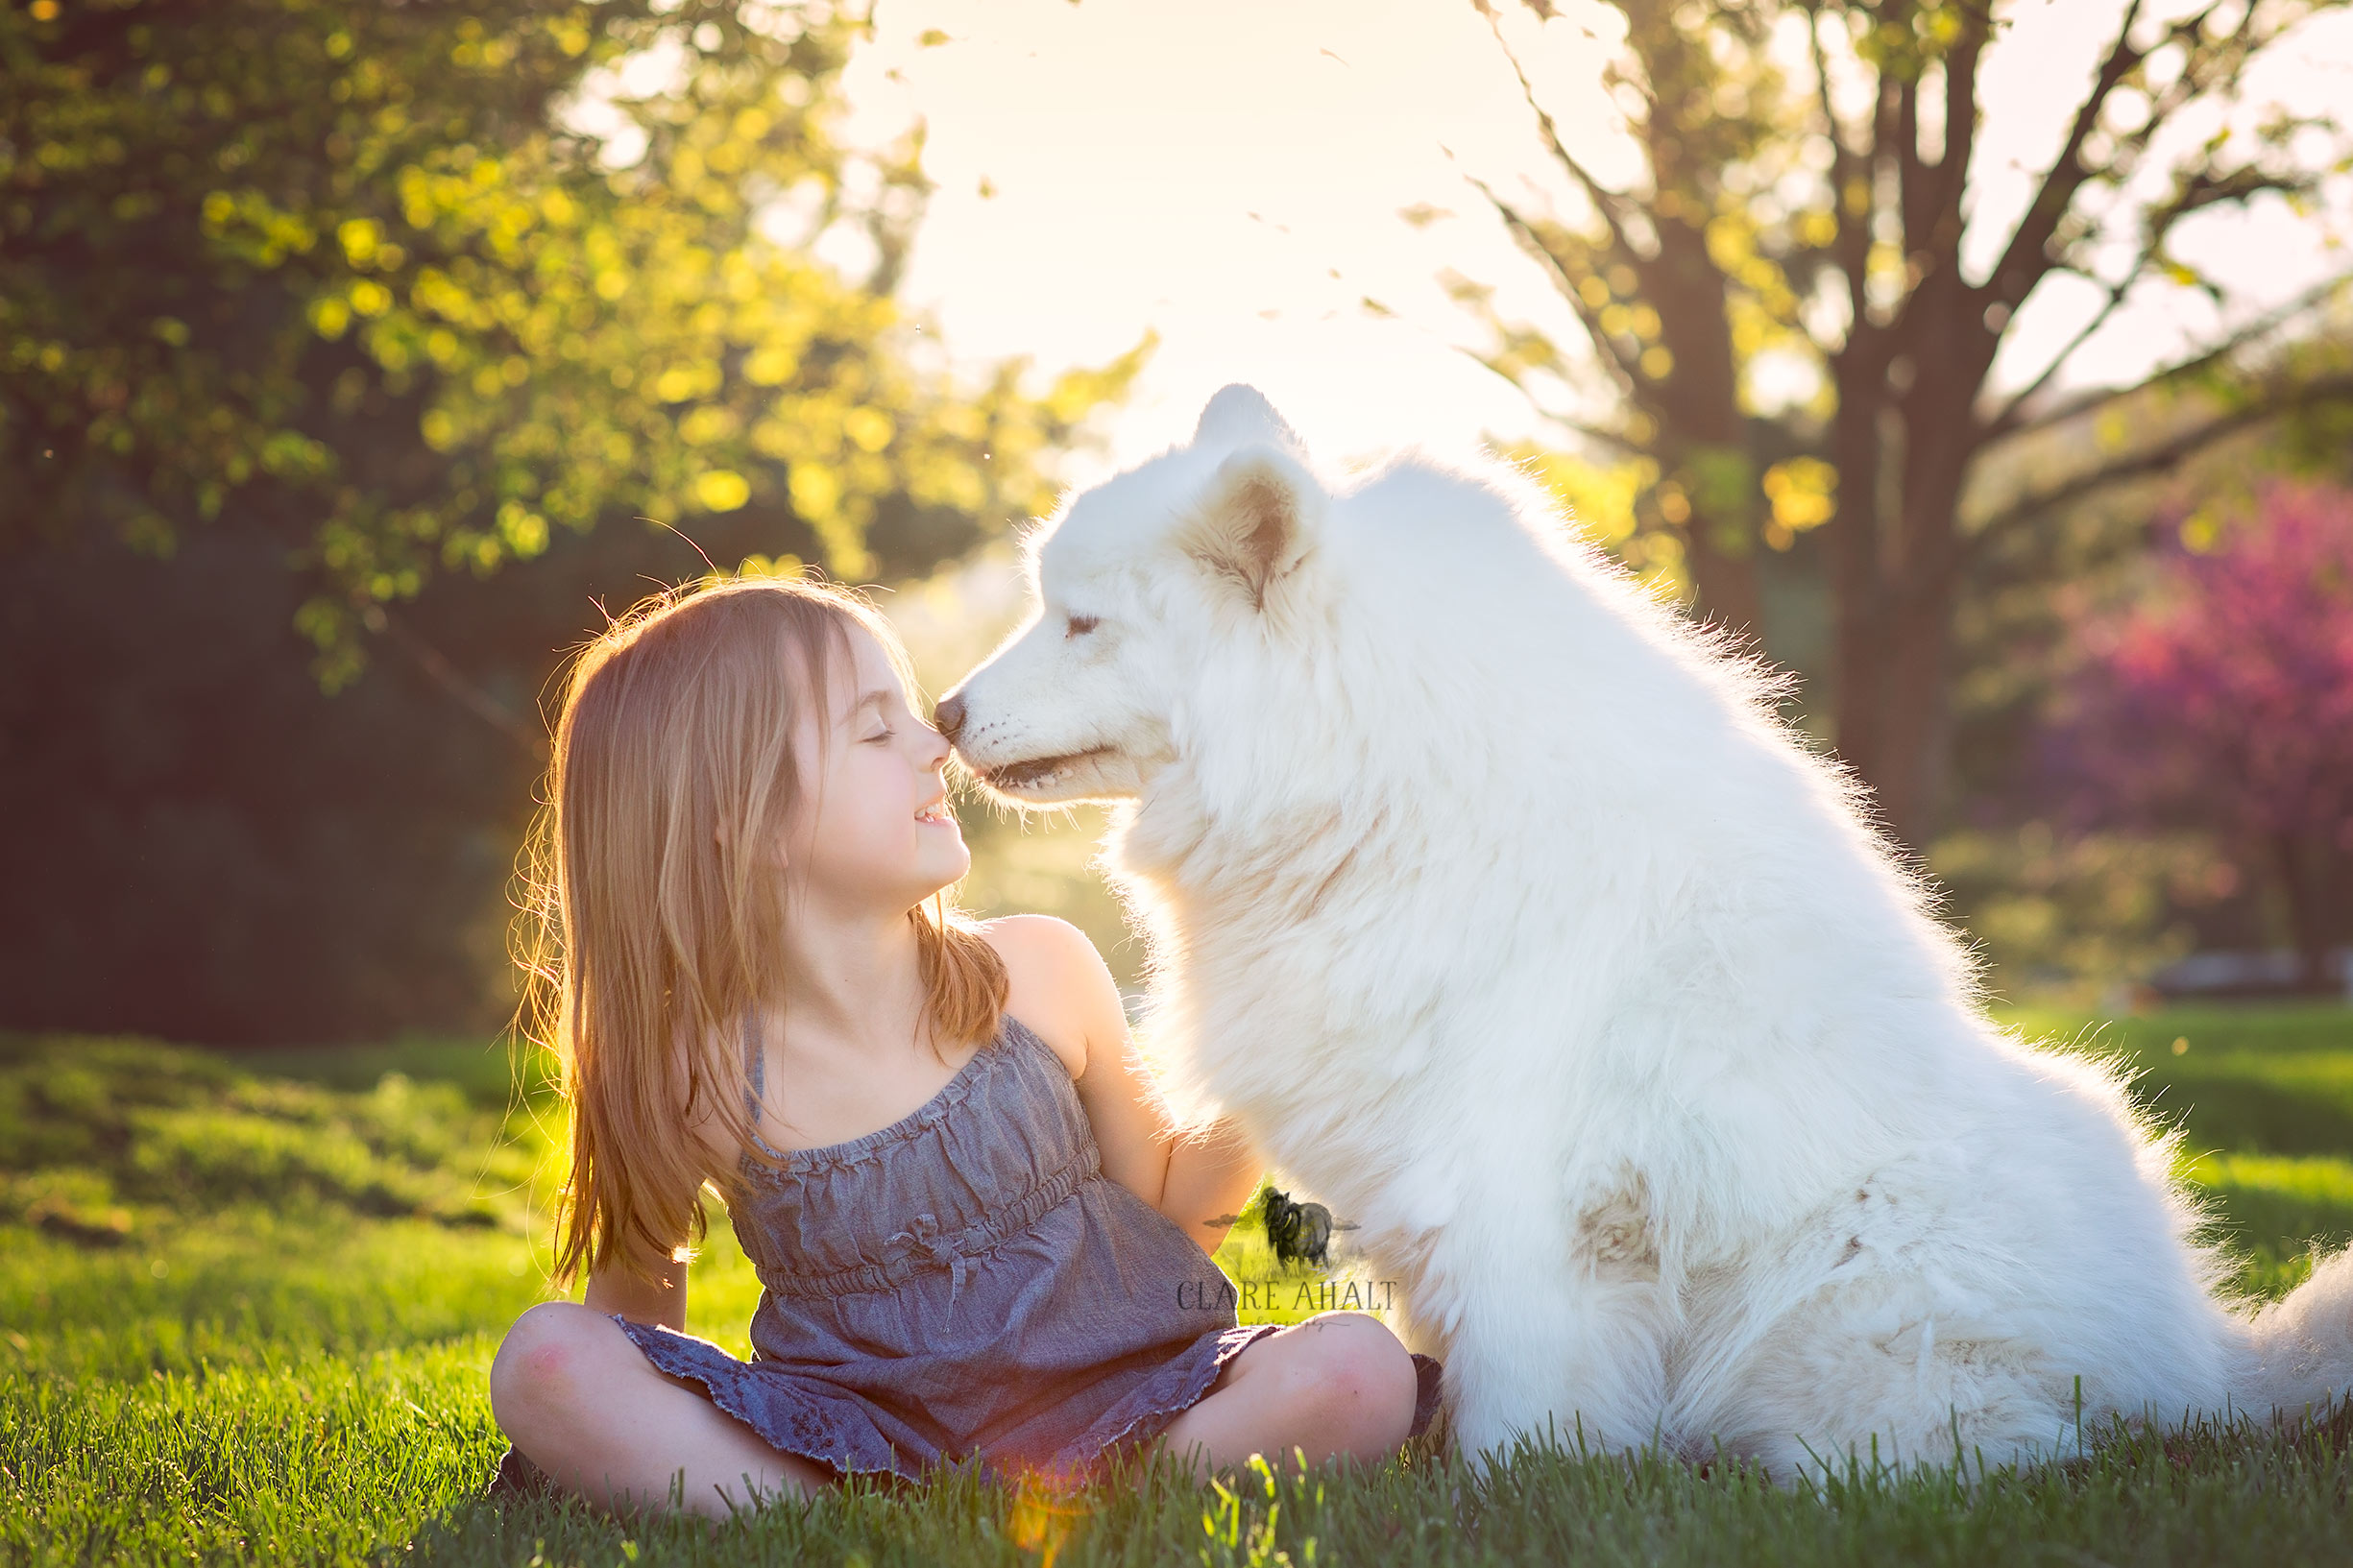 Veterinarian Dr. Ahalt's daughter with their dog on their farm in Frederick MD